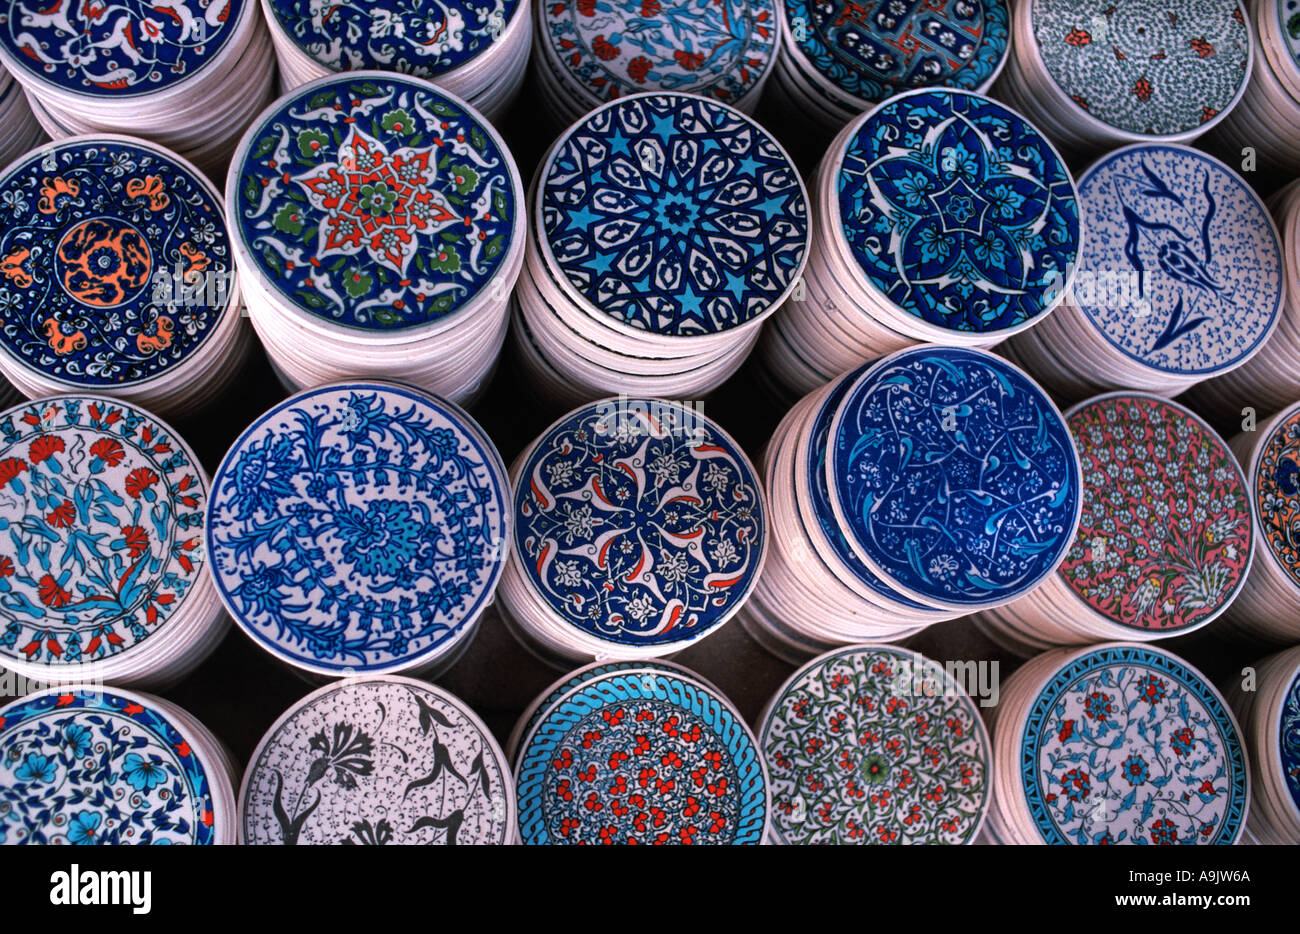 Detail of stacks of circular ceramic tiles for sale at souvenir detail of stacks of circular ceramic tiles for sale at souvenir market in the zelve valley cappadocia turkey dailygadgetfo Image collections